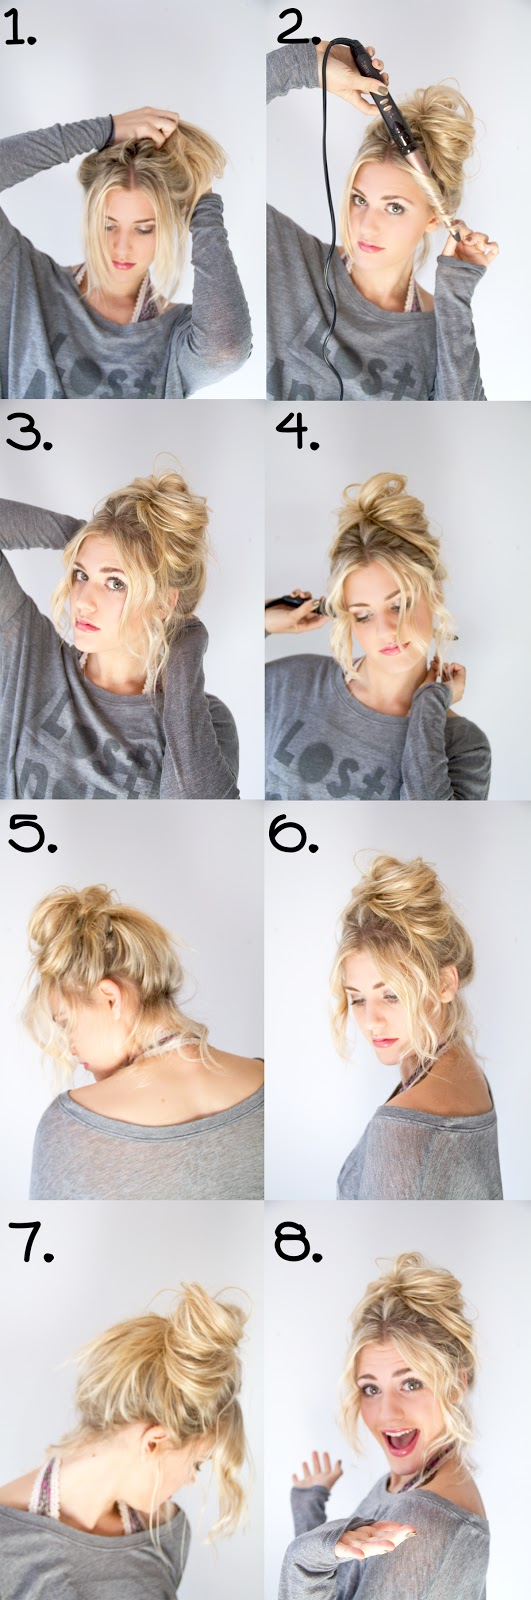 hair tutorial, messy bun, fun, hairstyle, blonde